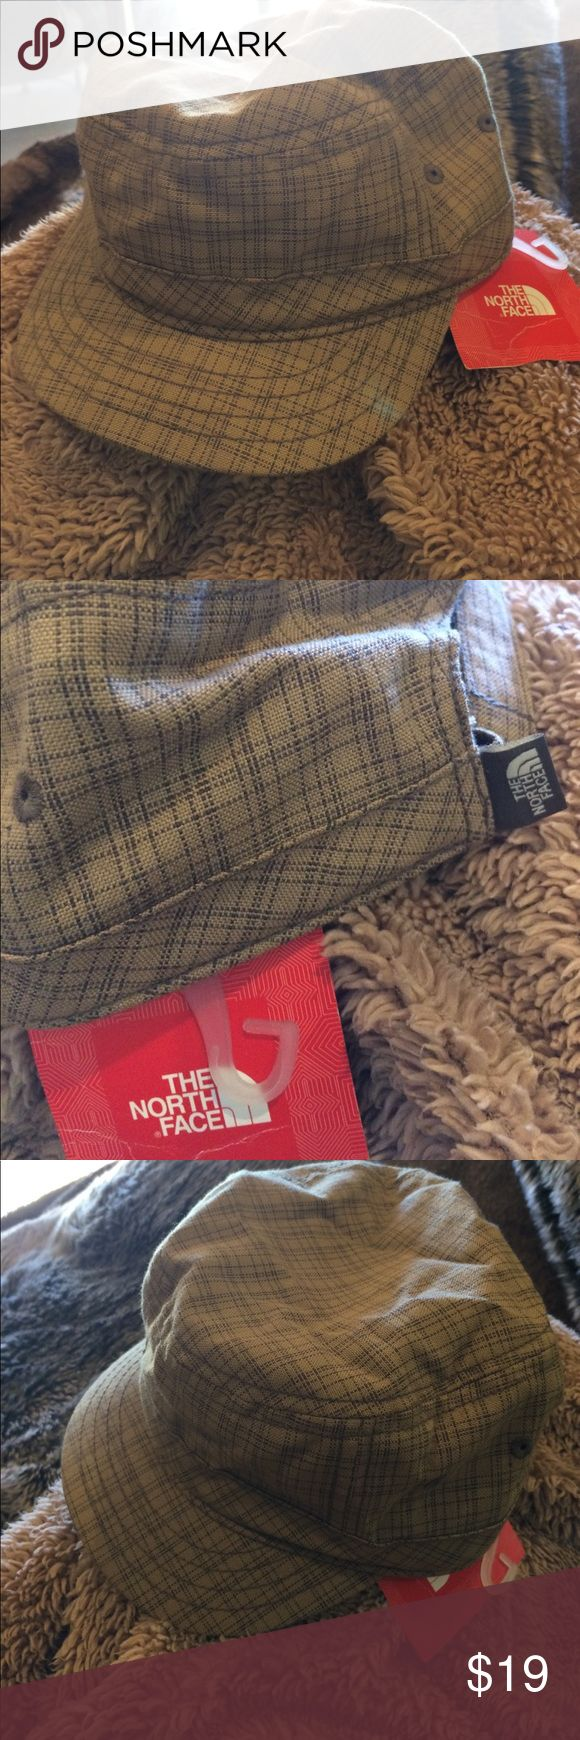 NWT North Face Very Cute Enlisted Military Hat. NWT North Face Very Cute Enlisted Military Hat in Weimaraner Brown. Velcro back adjuster with Sweet NF Logo. The North Face Accessories Hats